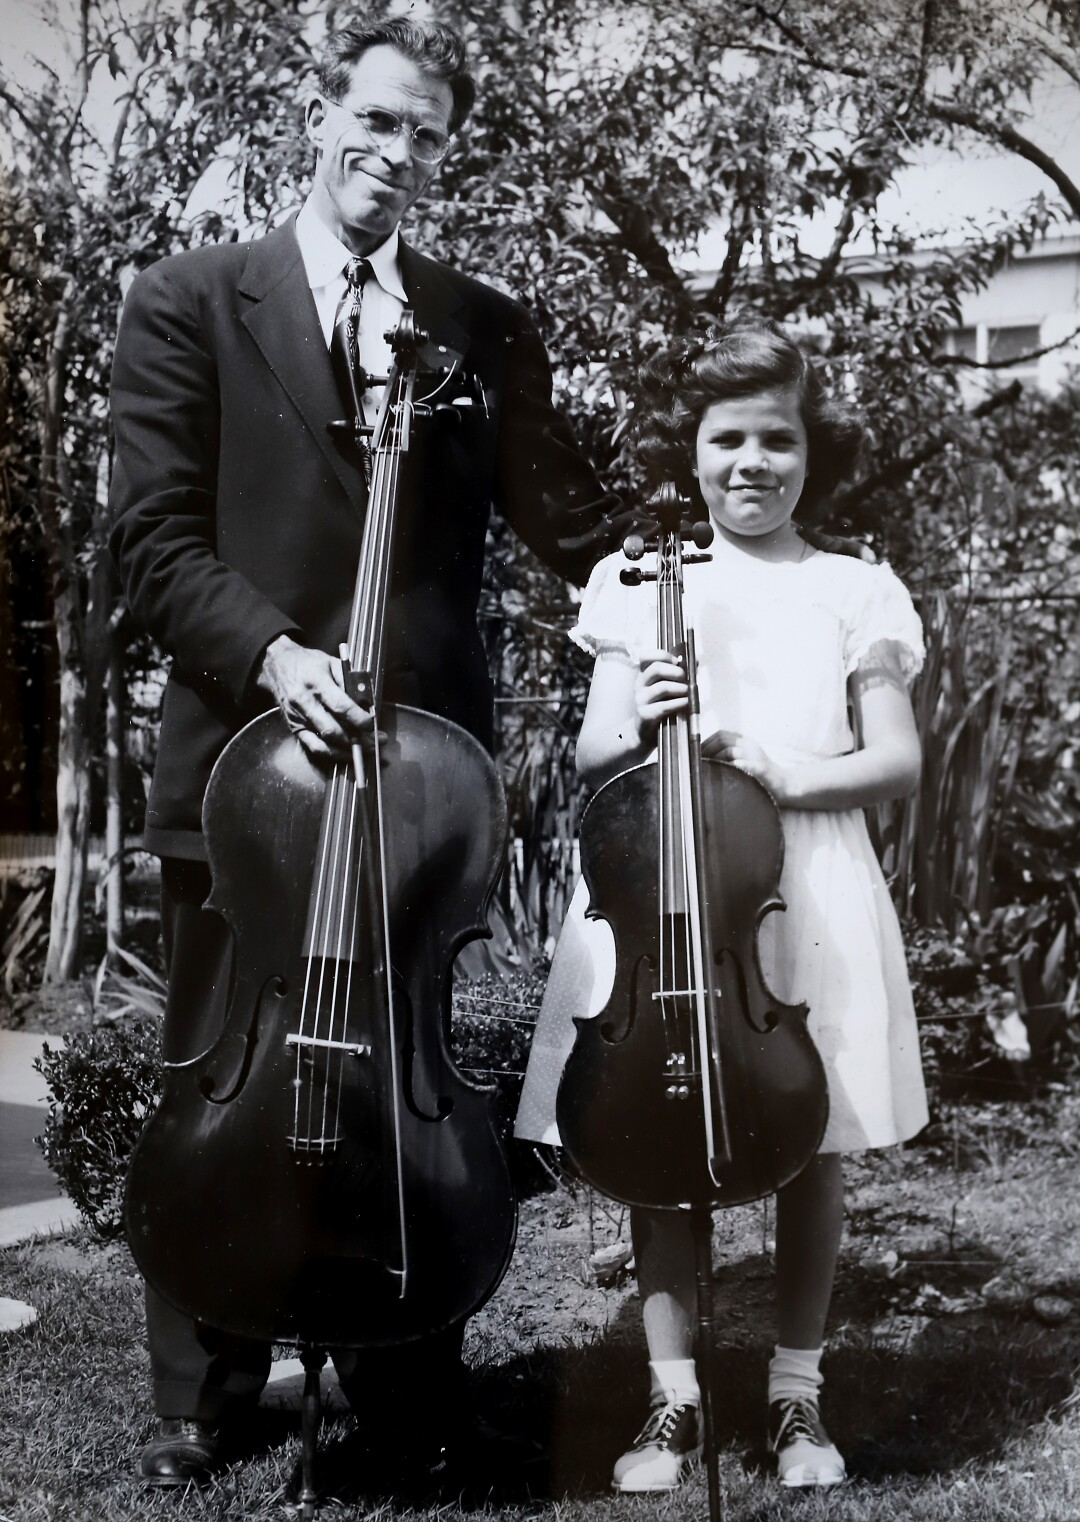 Christine Walevska with her father, Hermann. She is holding a rare Bernardel cello that was stolen in 1976.